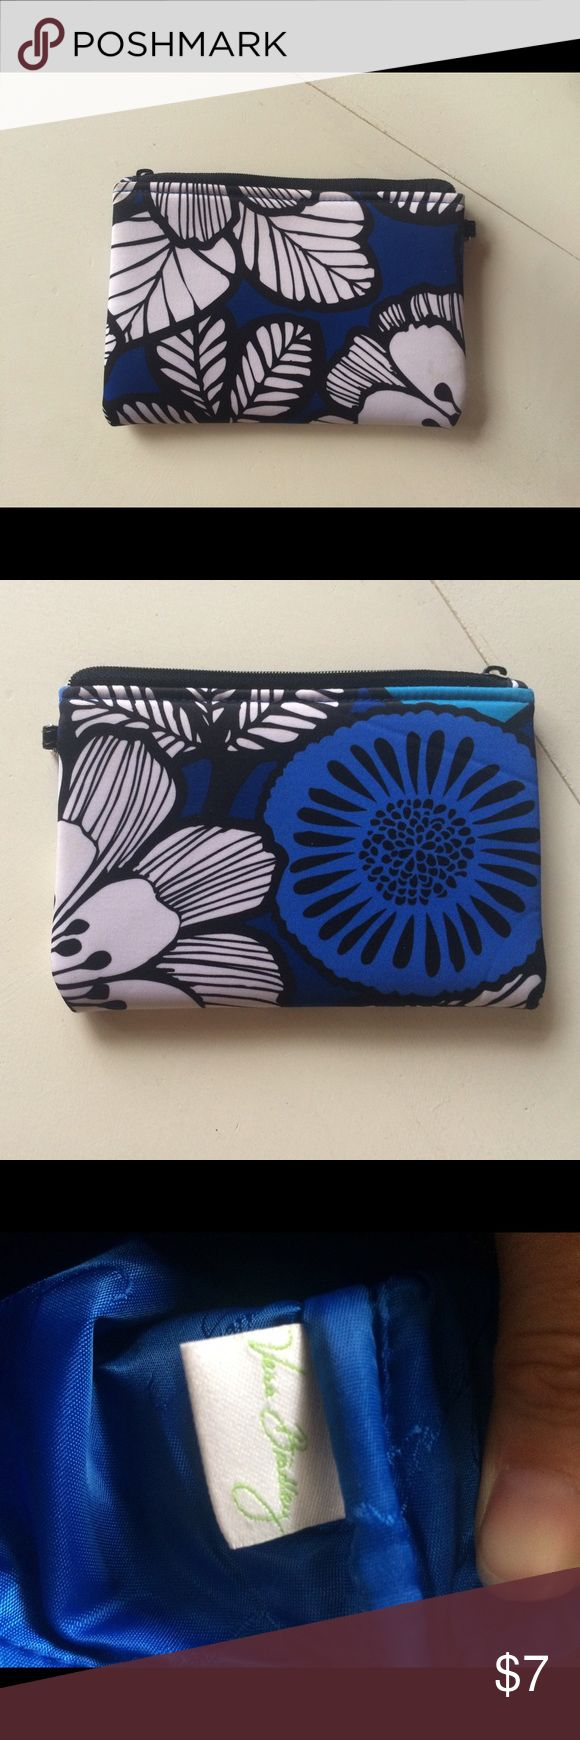 "Vera Bradley pouch clutch zip small blue floral This is a Vera Bradley wristlet, unfortunately the strap is missing and with it also the zipper pull. It does still zip so could be repaired. Otherwise in good shape with a little bit of a brown spot on the white flower near the corner. Would most likely wash or spot clean out. 7.5""x5.5"" Vera Bradley Bags Clutches & Wristlets"